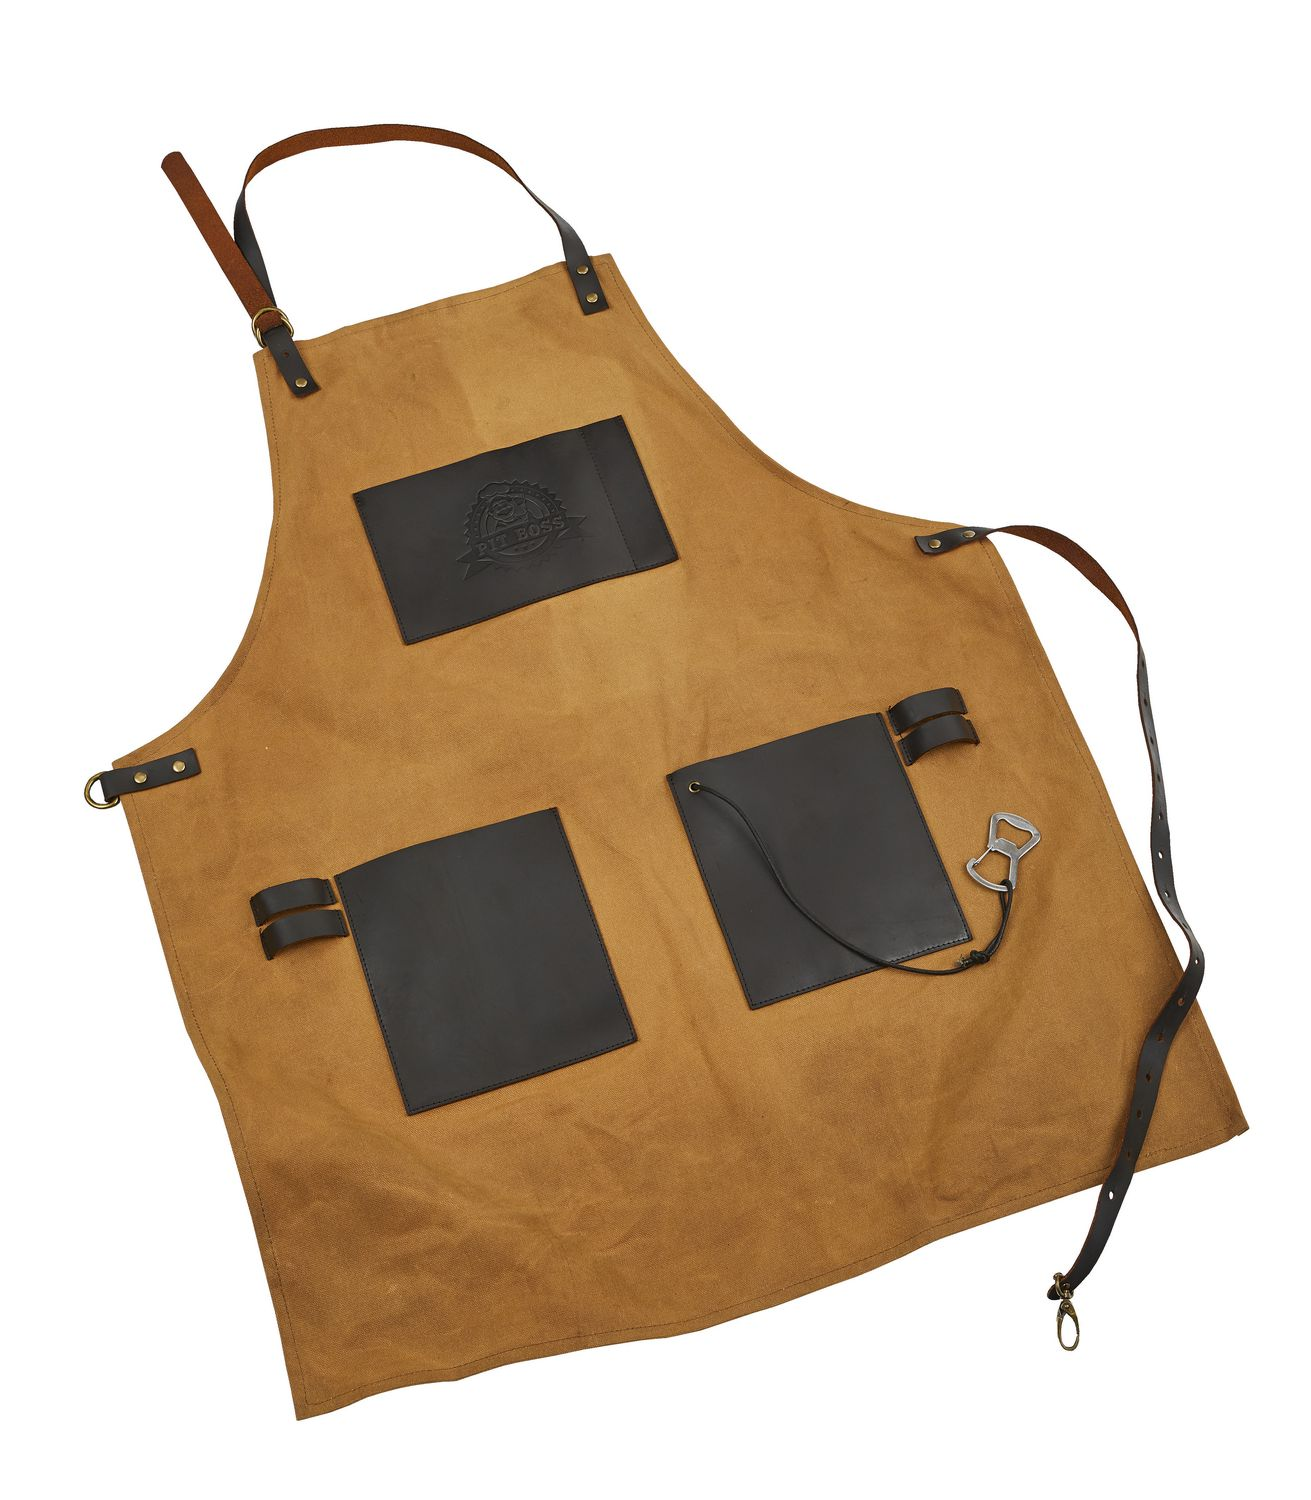 Pit Boss BBQ Canvas & Leather Grilling Apron - Best Barbecue Apron